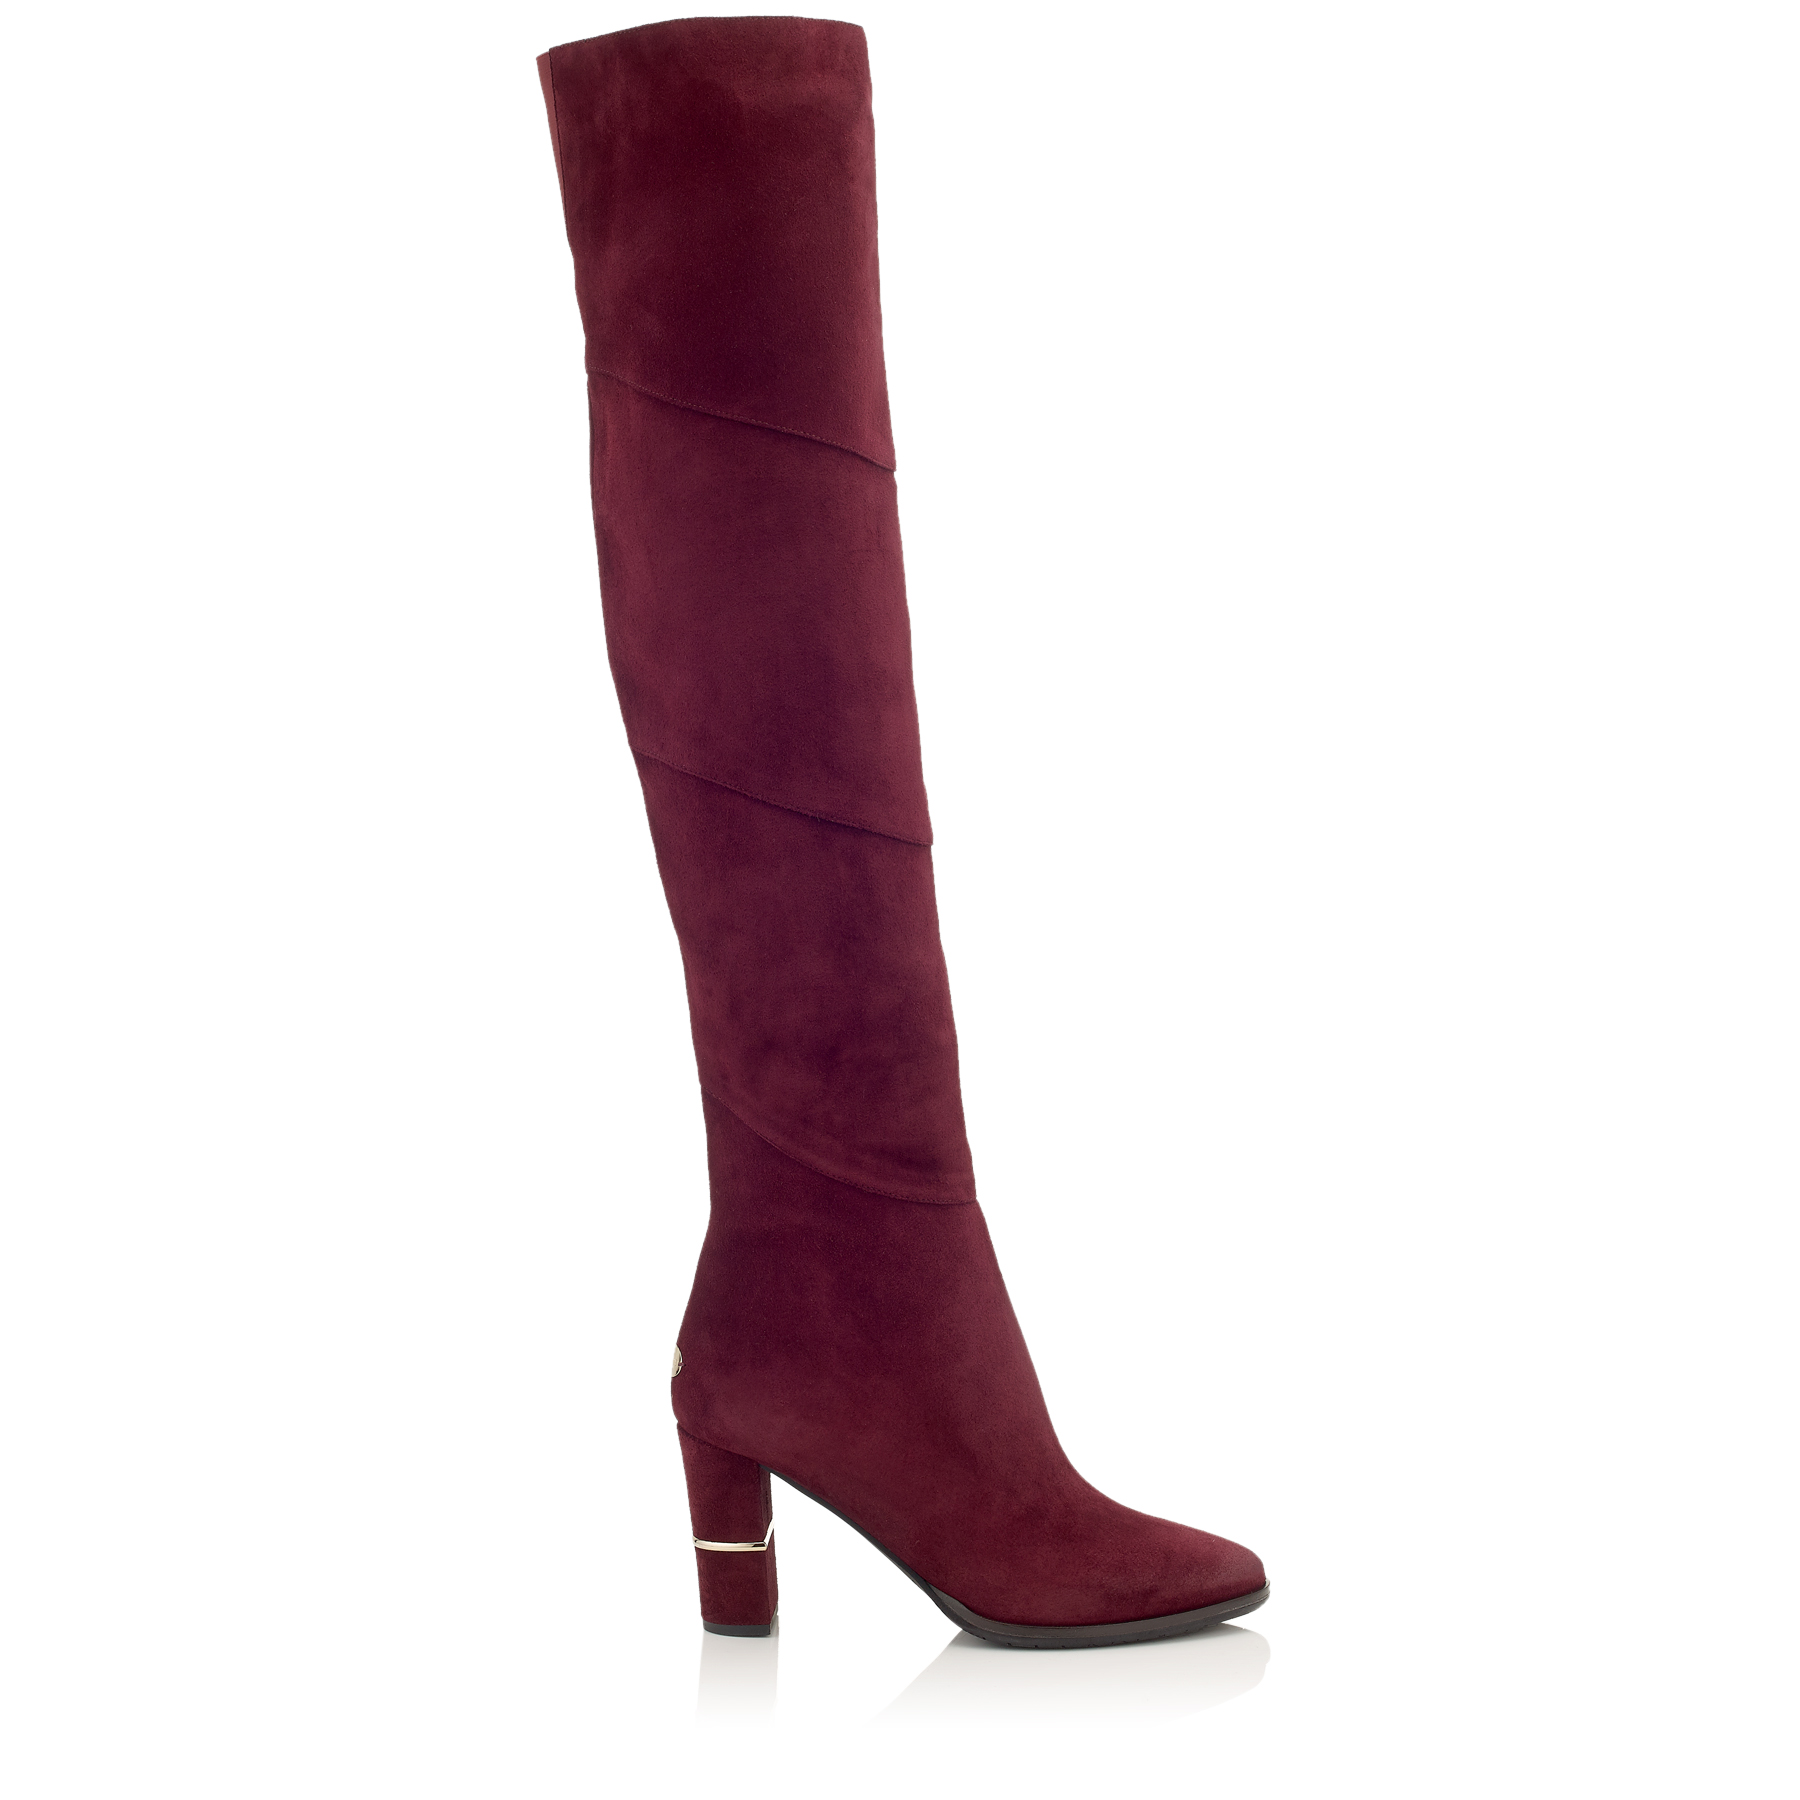 MAIRA 80 Bordeaux Suede Over-the-Knee Boots